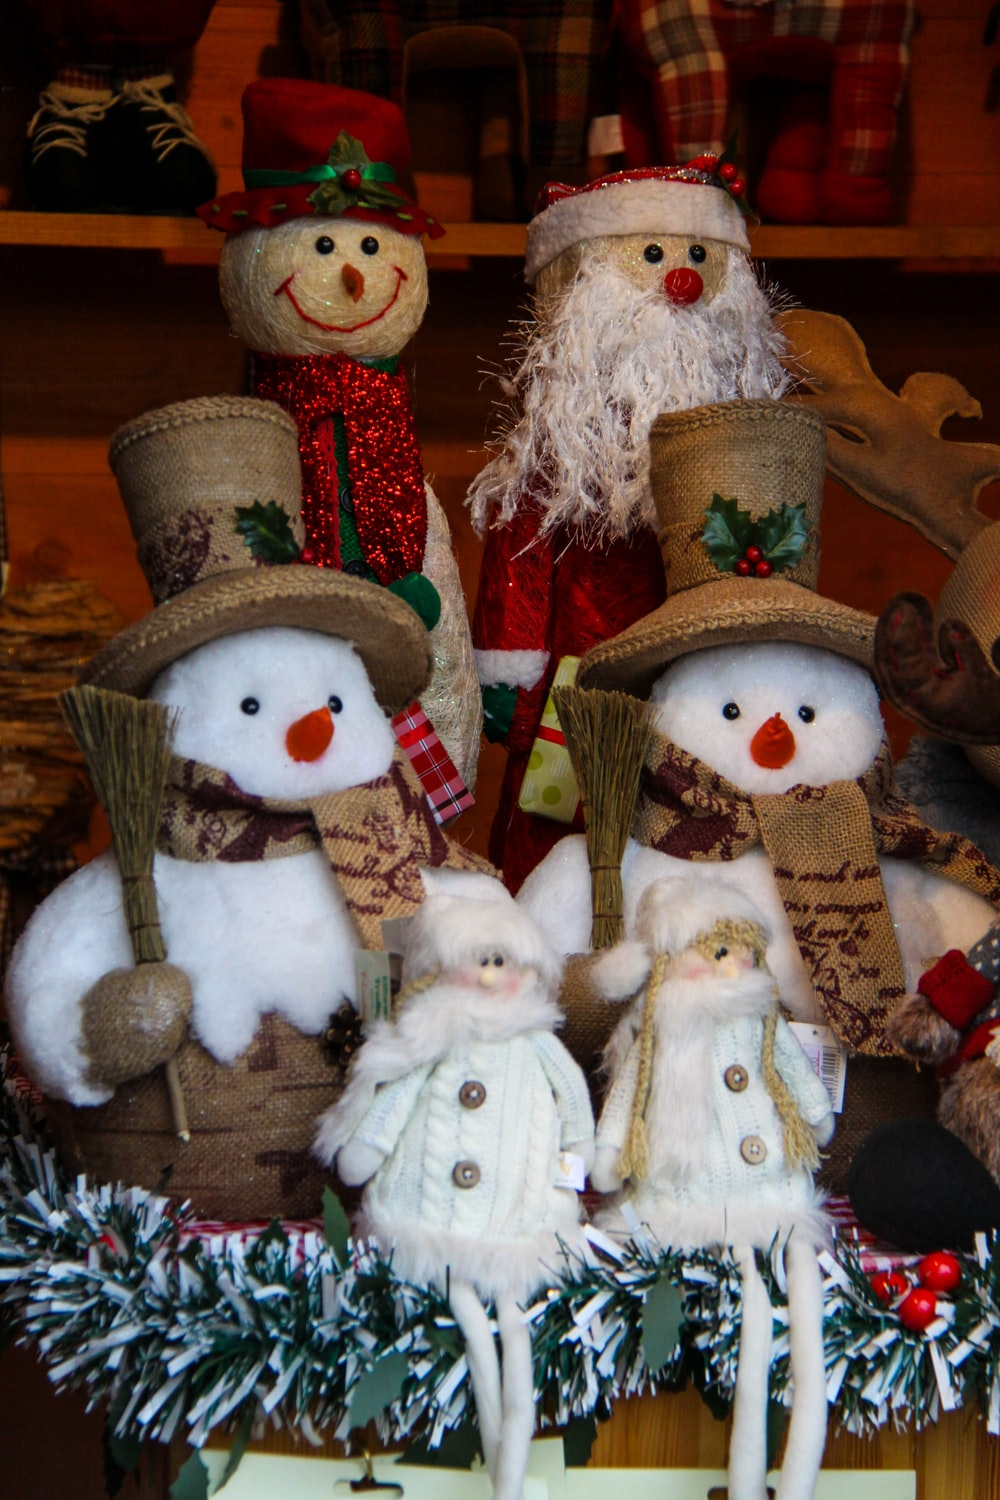 several Santa Claus and snowman plush toys